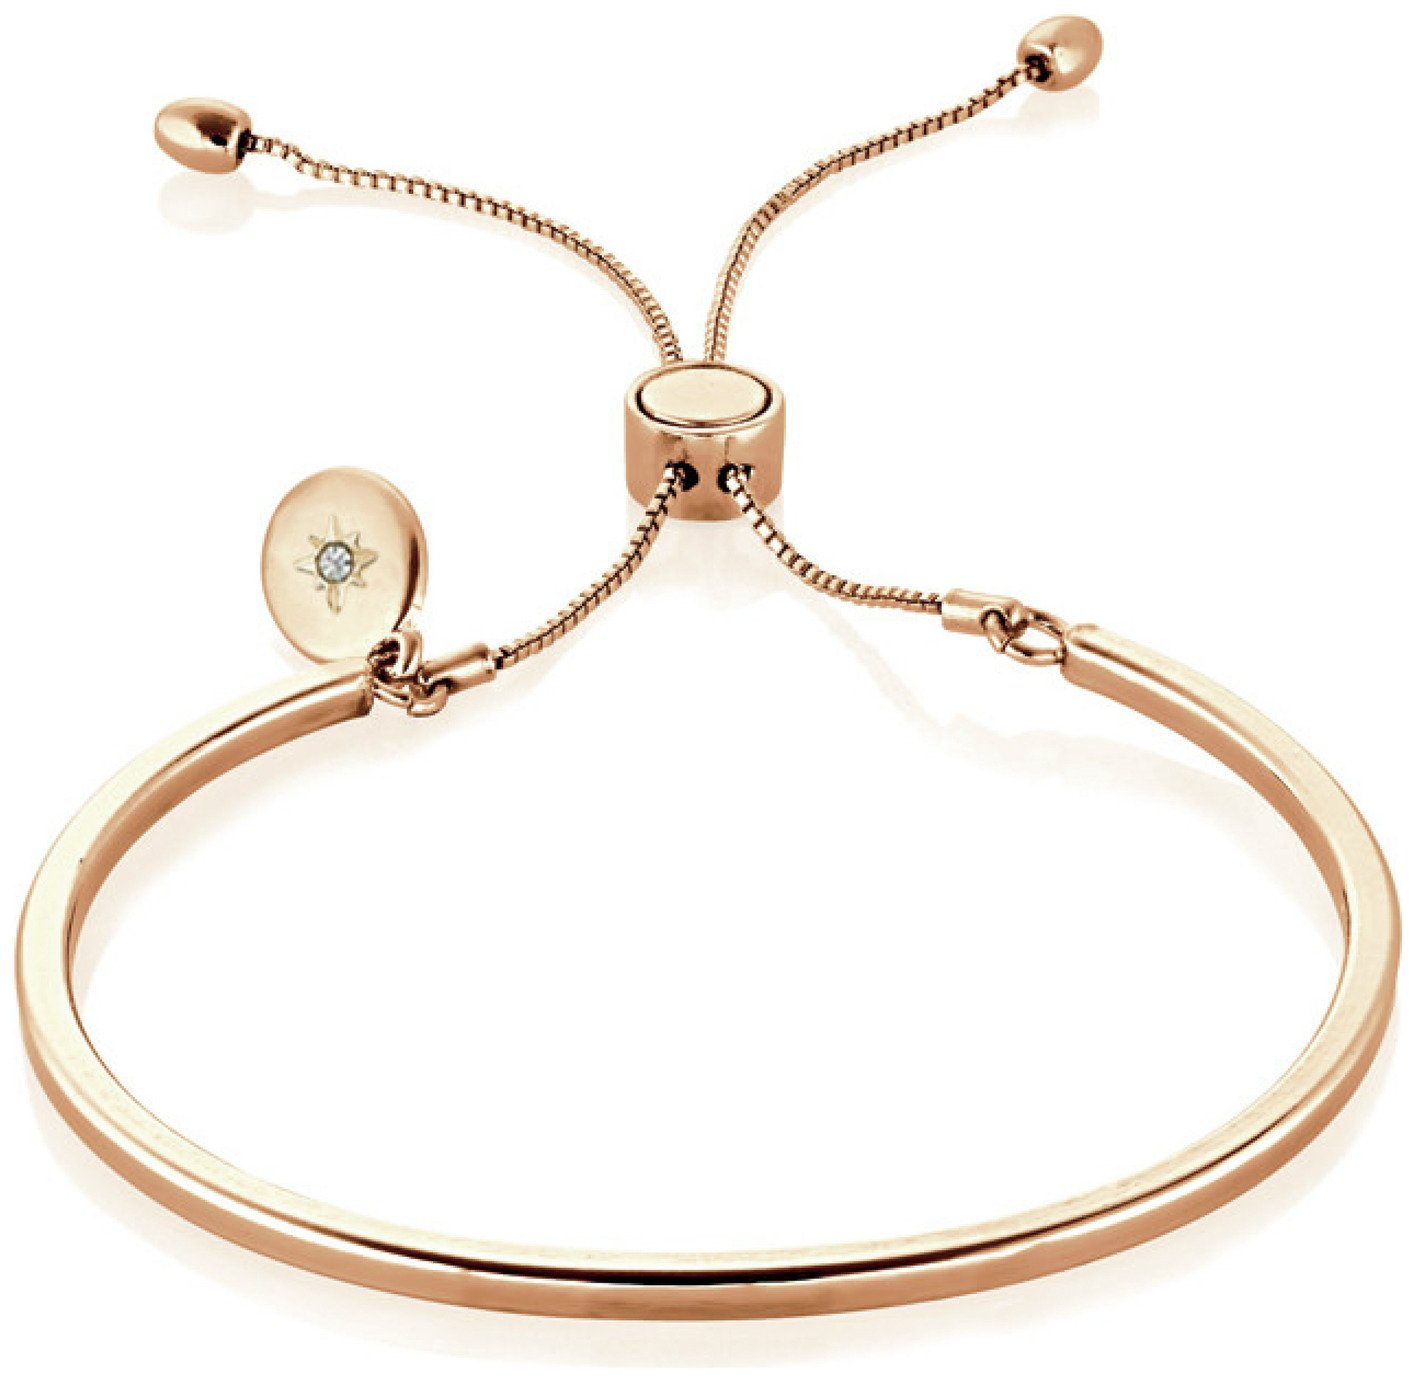 Buckley London Piccadilly Rose Coloured Bangle